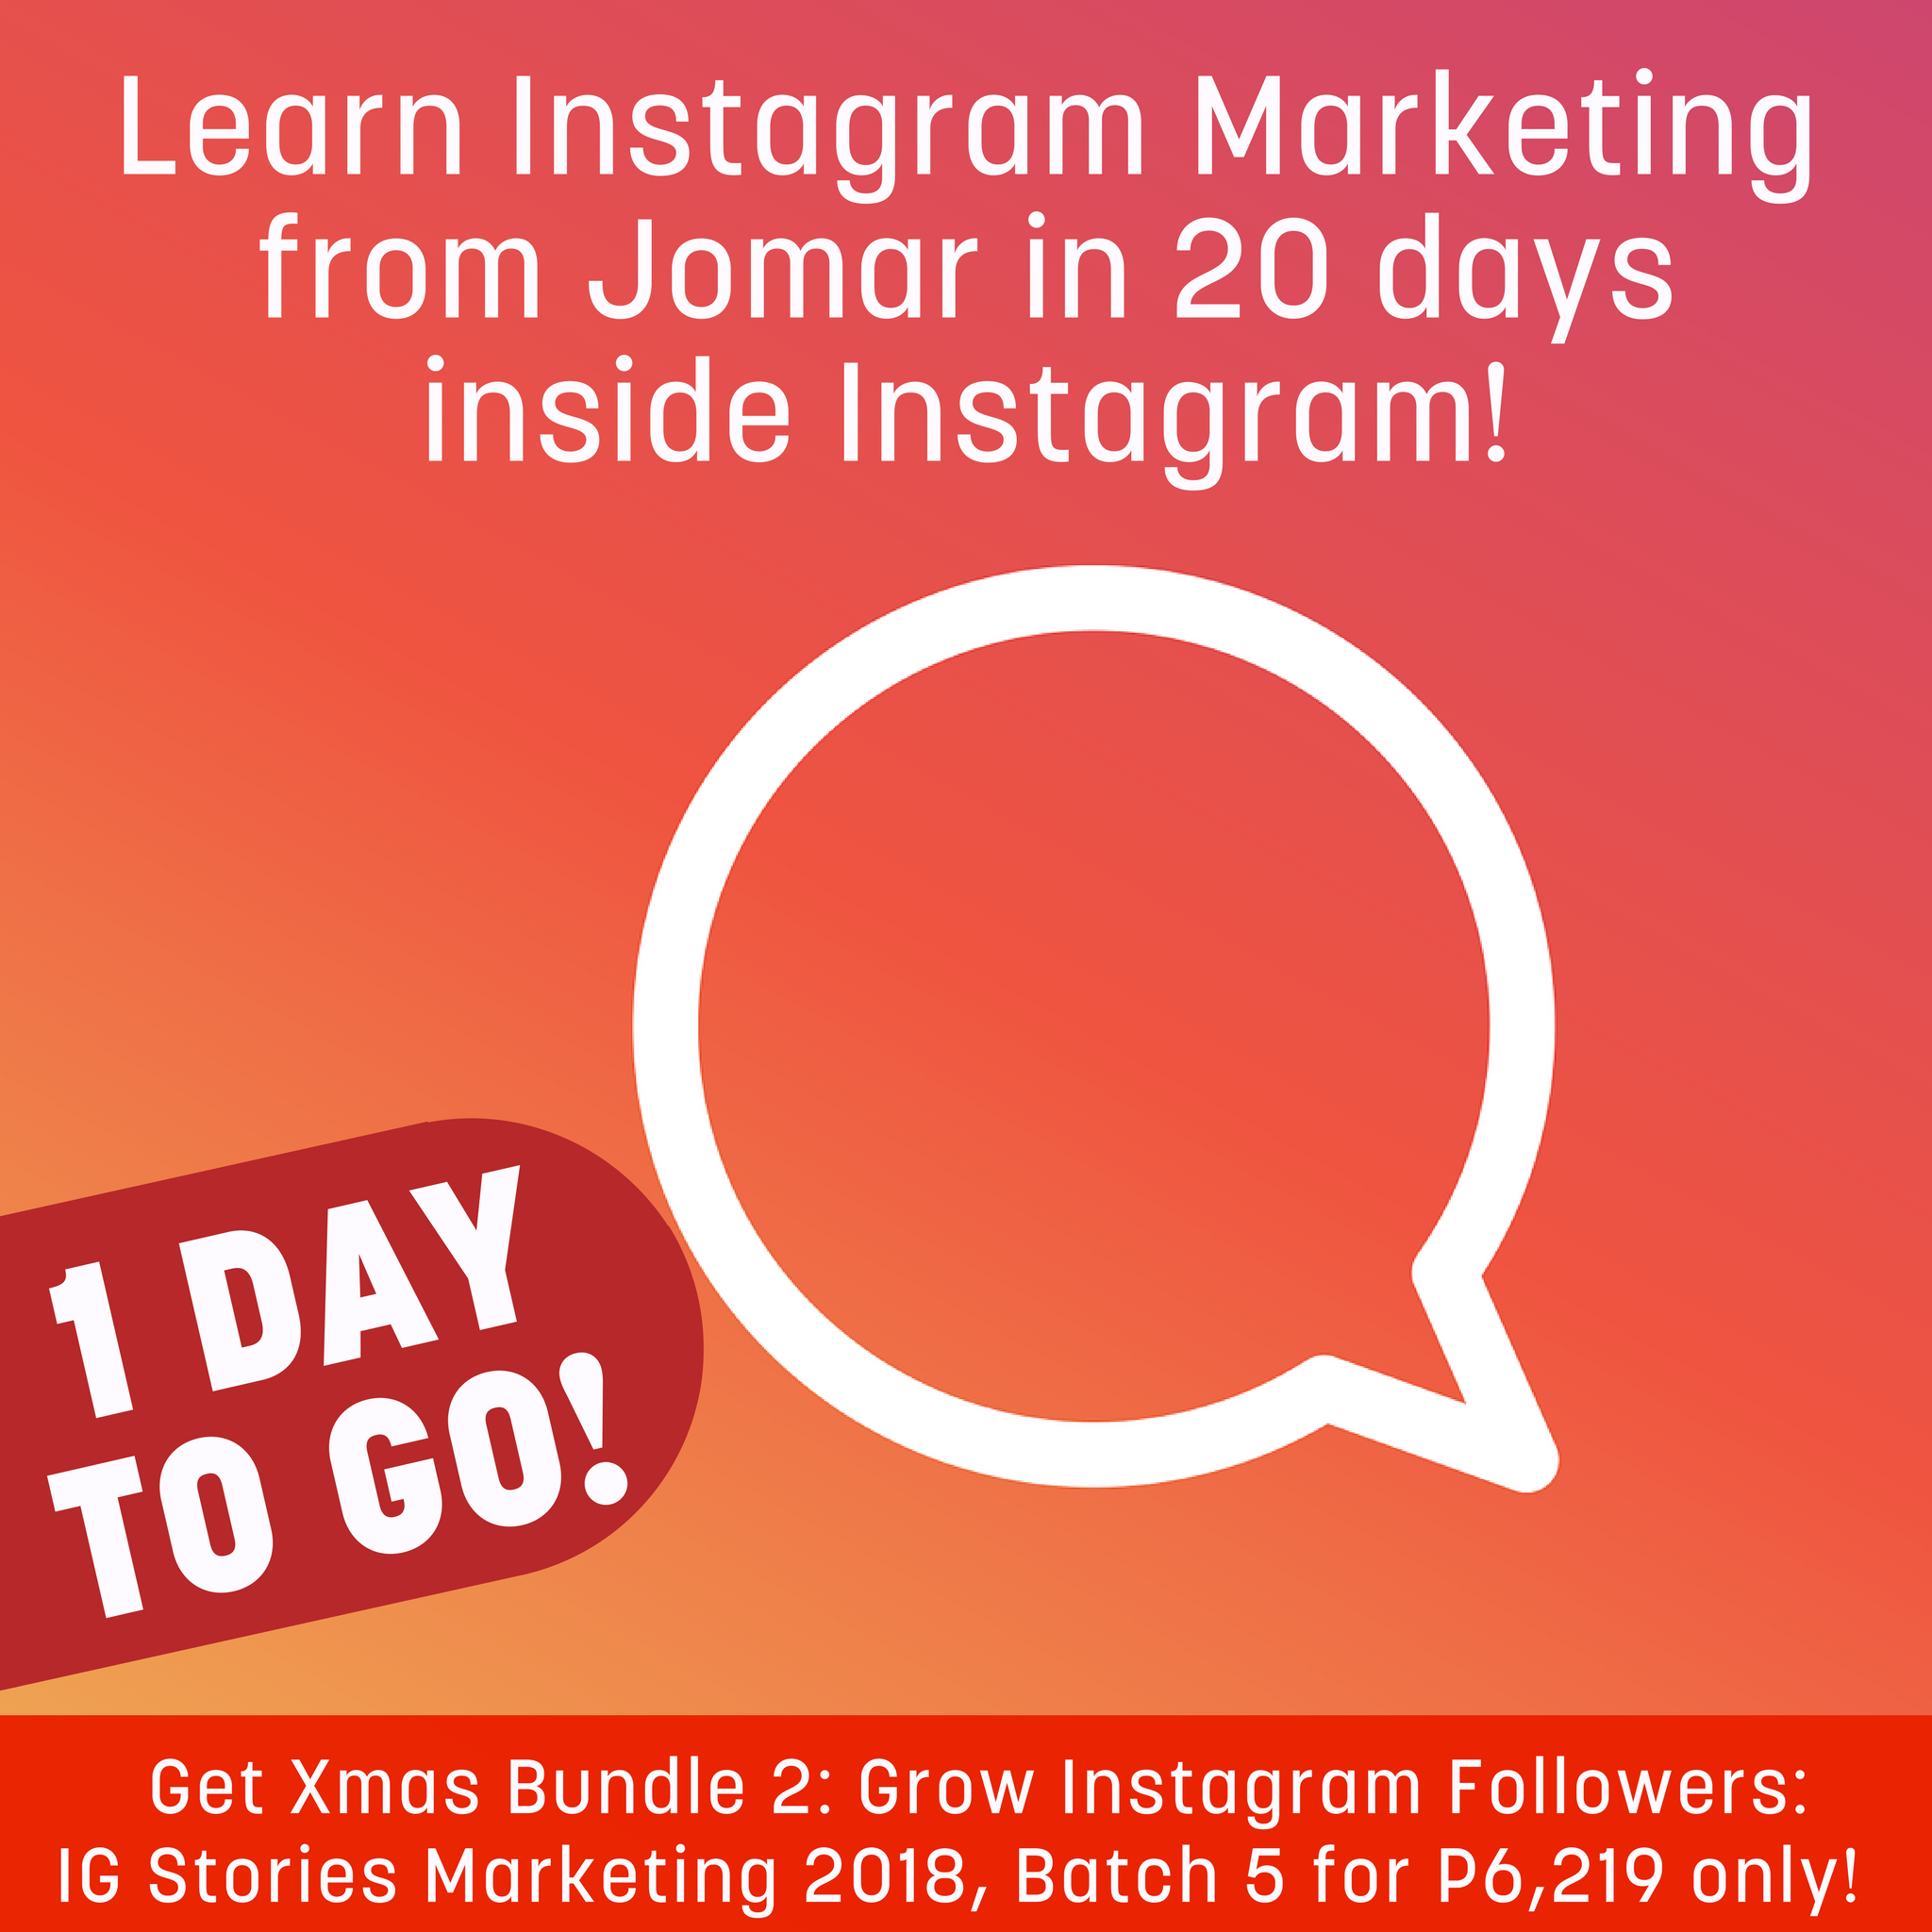 1 DAY TO GO! Be part of the Instagram Gold Rush! NOW NA